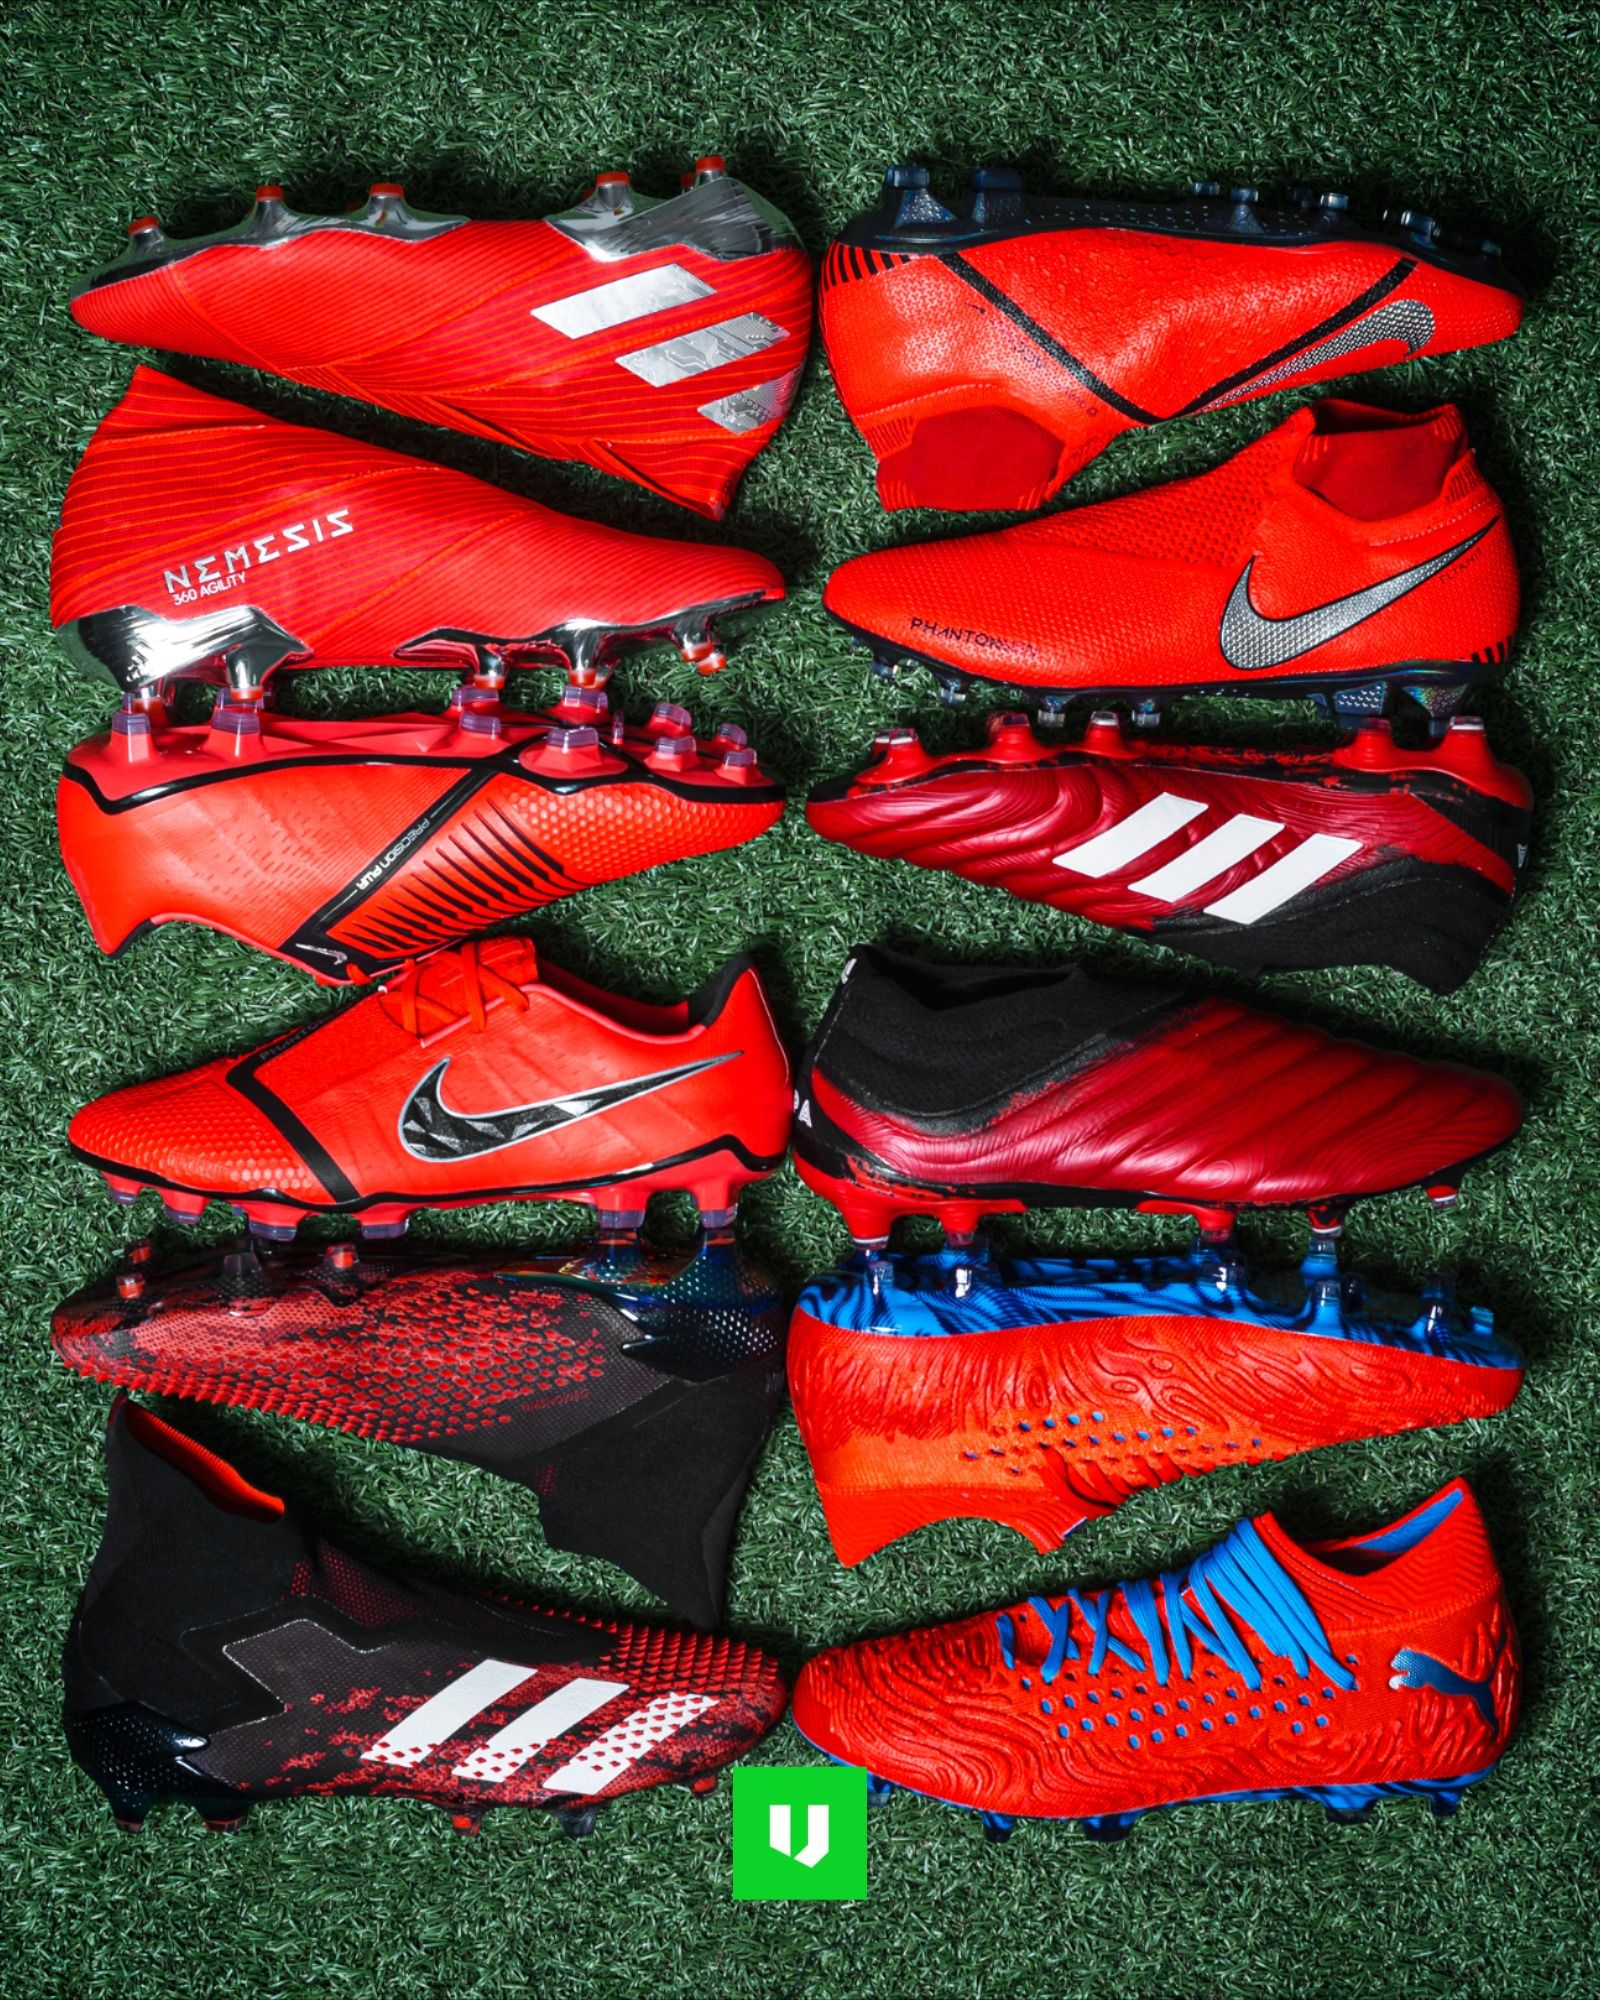 We Love Red Boots In 2020 Soccer Boots Soccer Cleats Nike Soccer Shoes